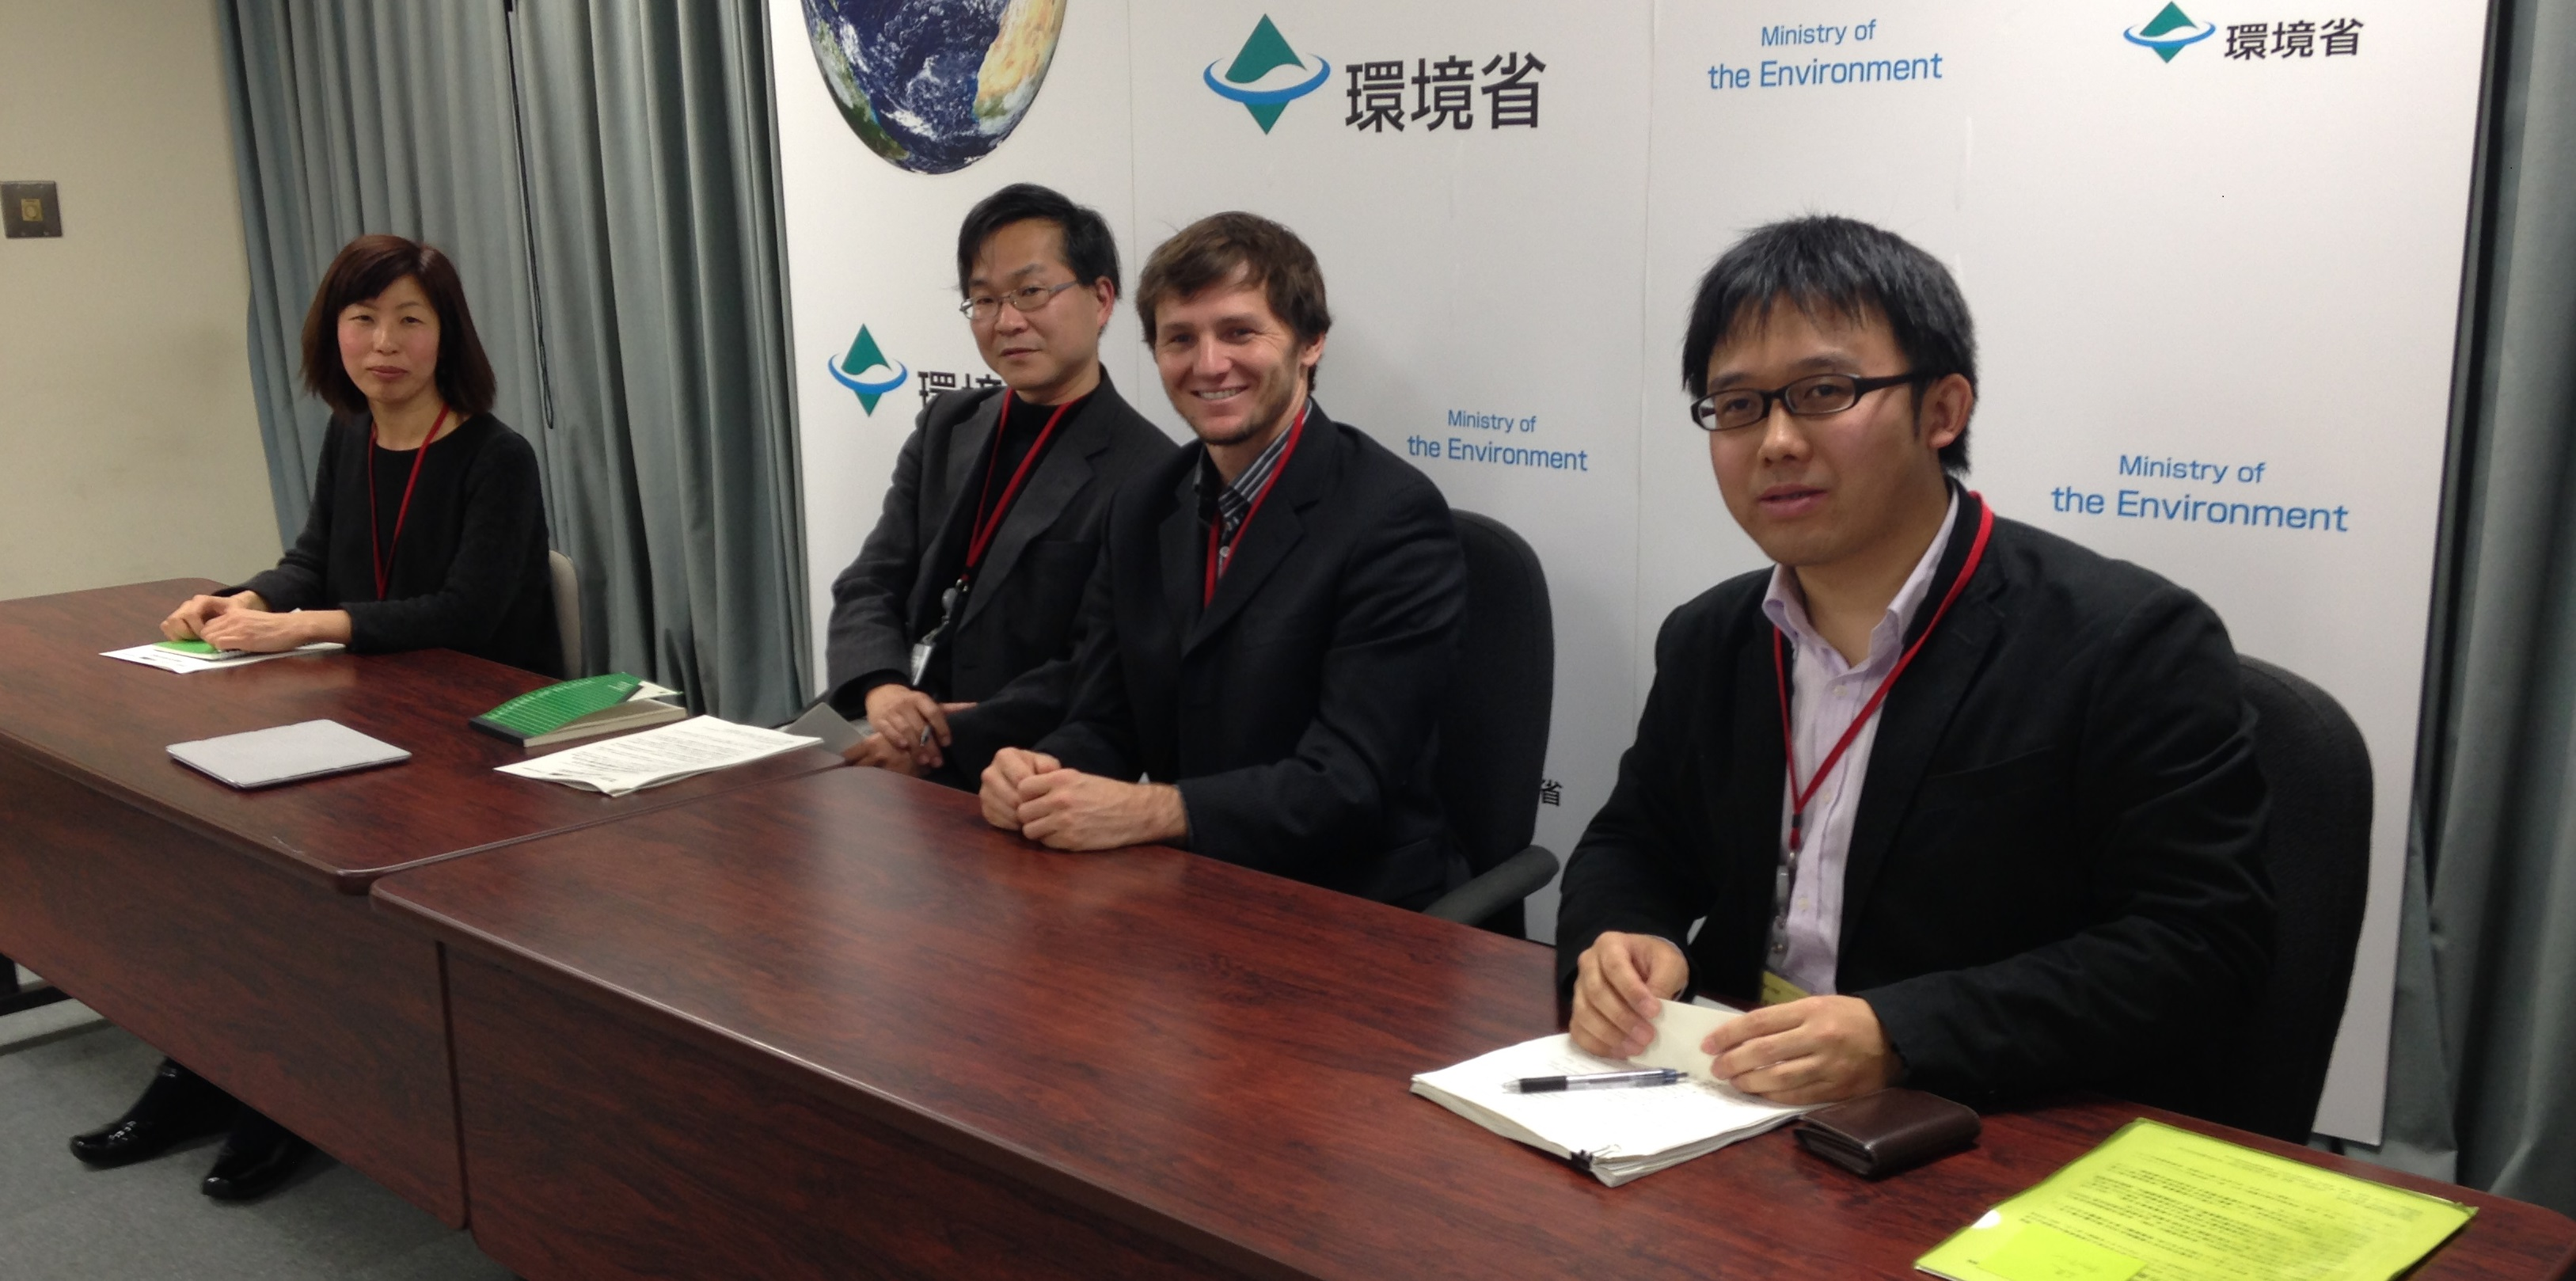 Press Conference (From L to R: Kimiko Hirata, Yuri Onodera, Justin Guay, Yuki Tanabe), February 3rd, 2014